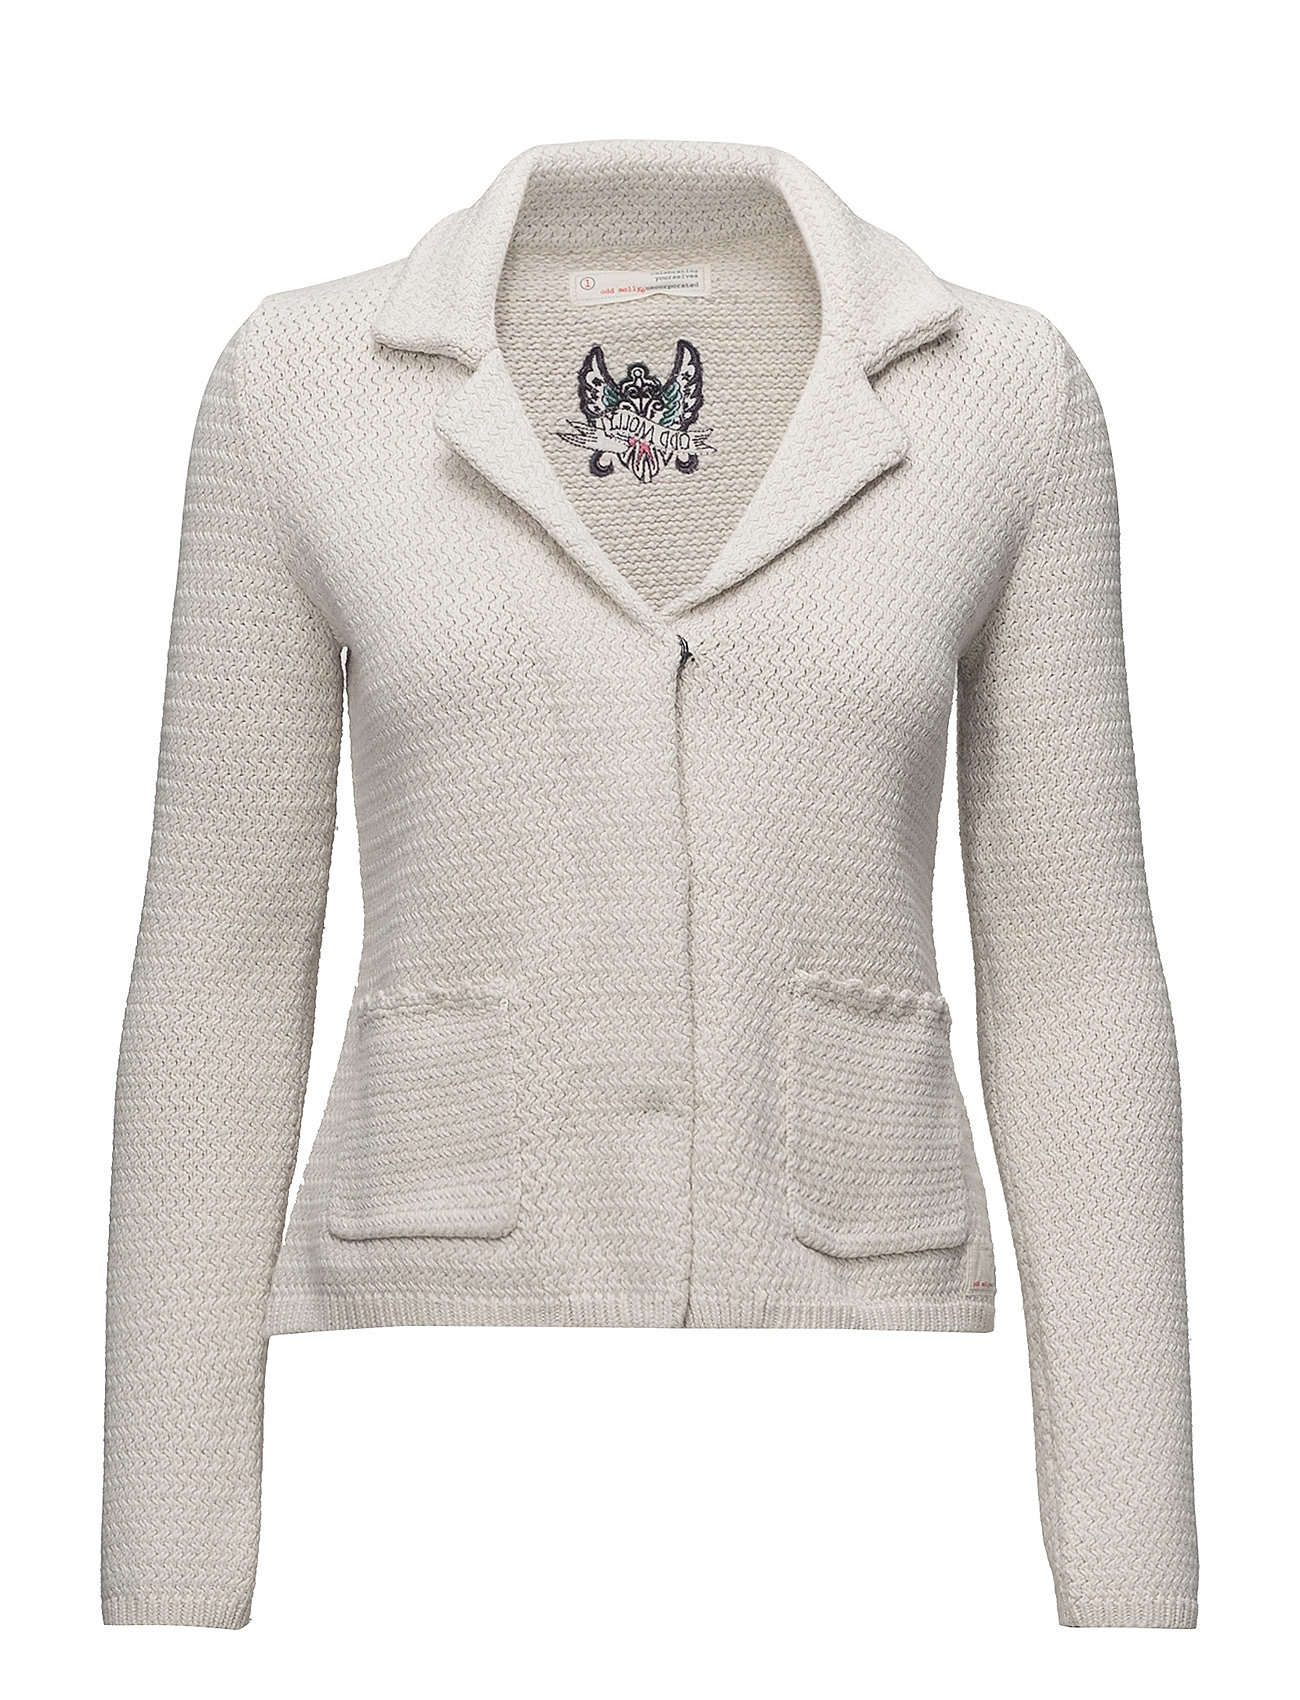 say hey cardigan Odd Molly Perfect Sale Online Outlet Shop Cheap Lowest Price Supply Online zqPgHoTV